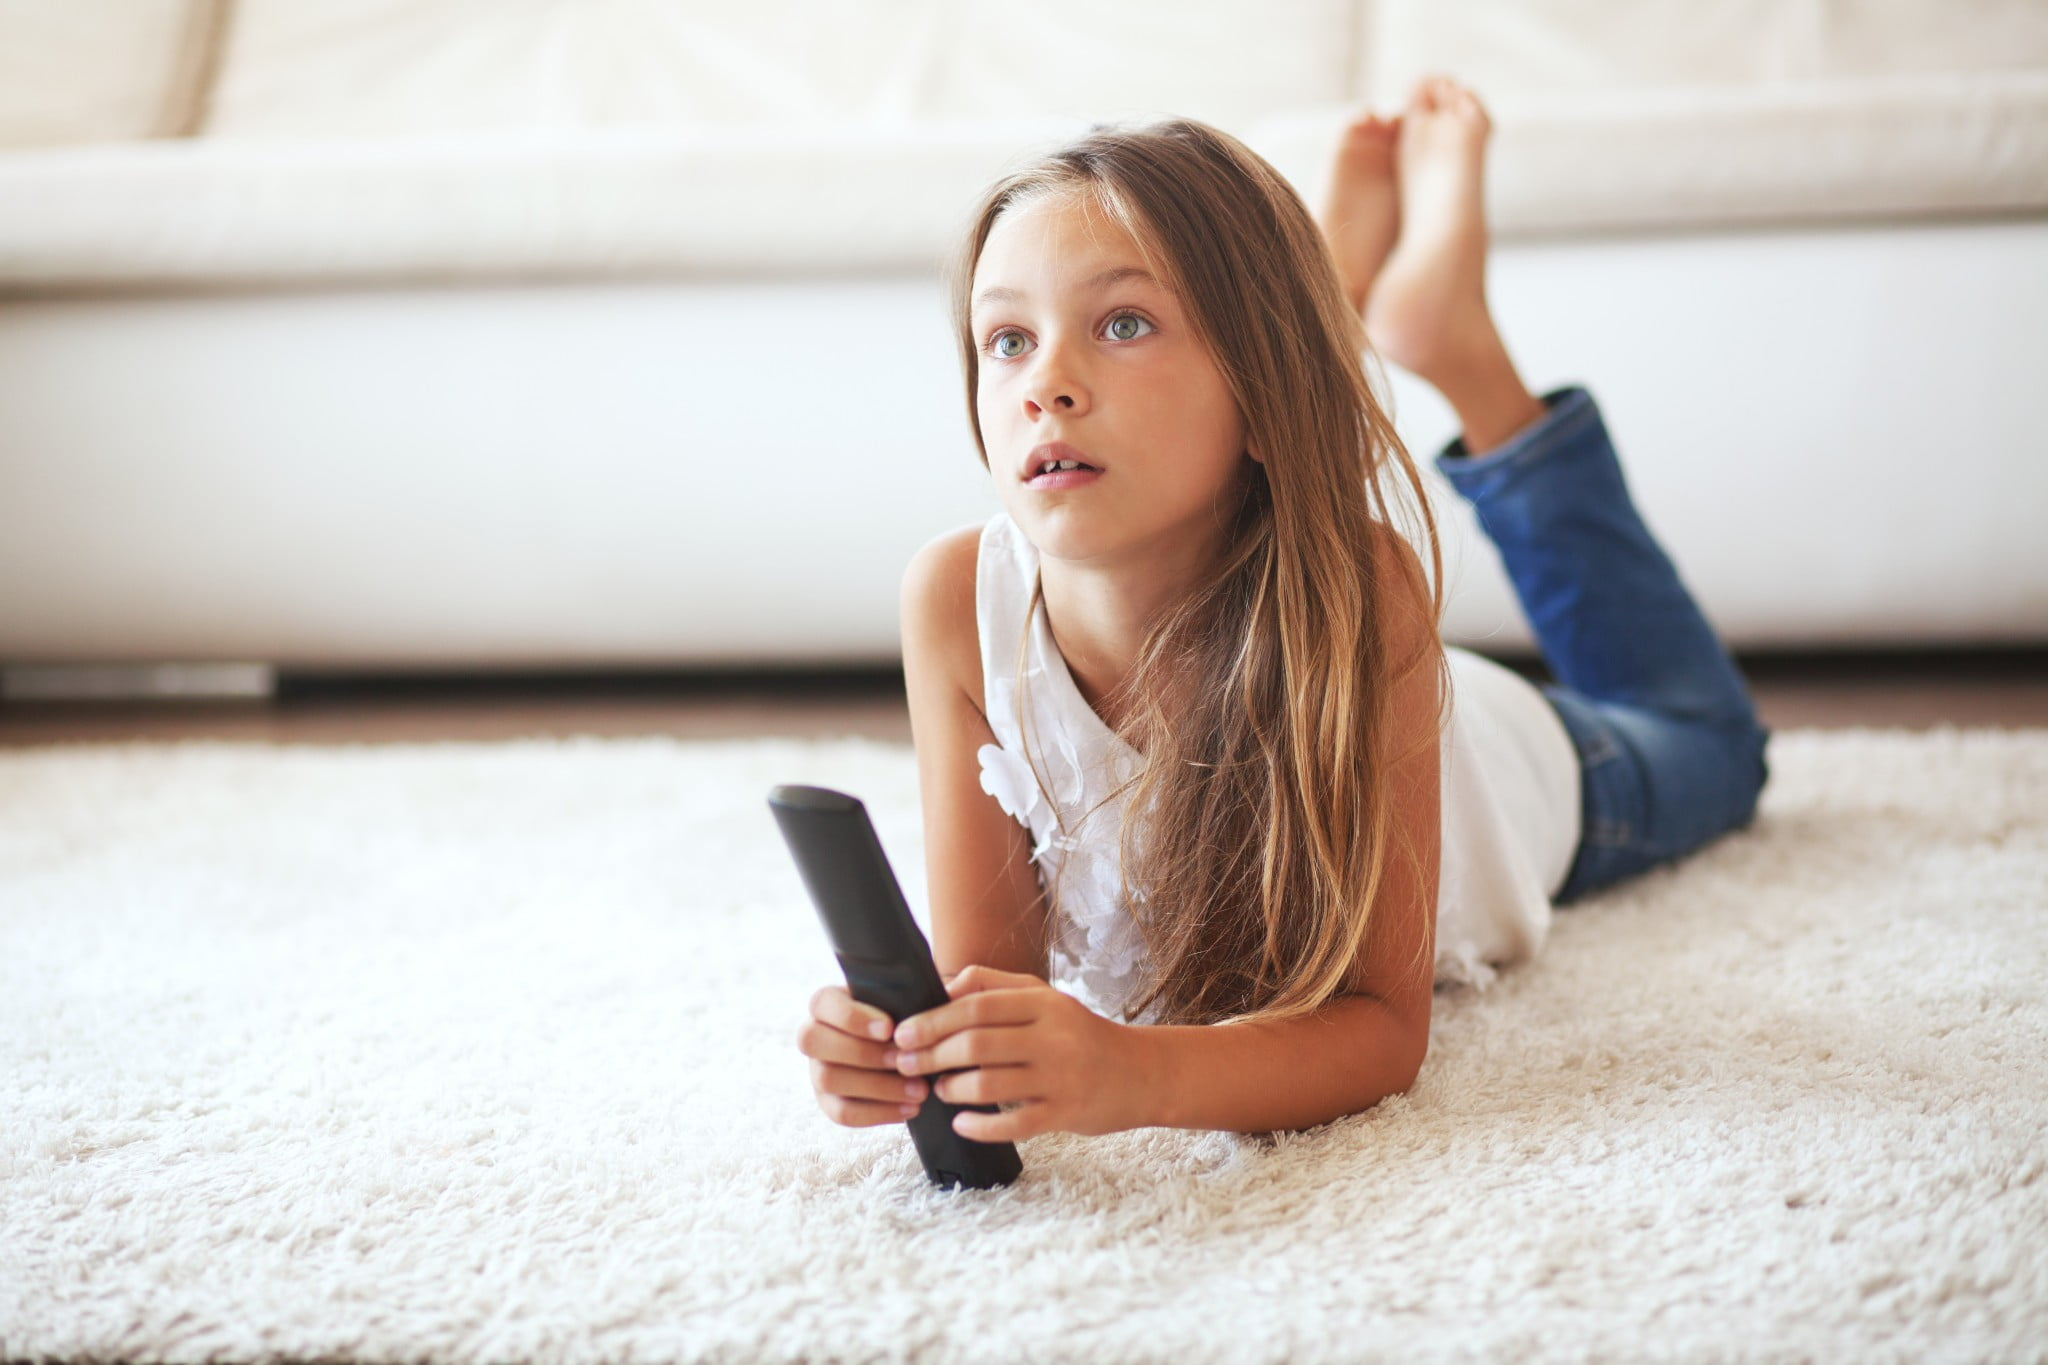 childhood inactivity: little girl lies on the floor watching tv